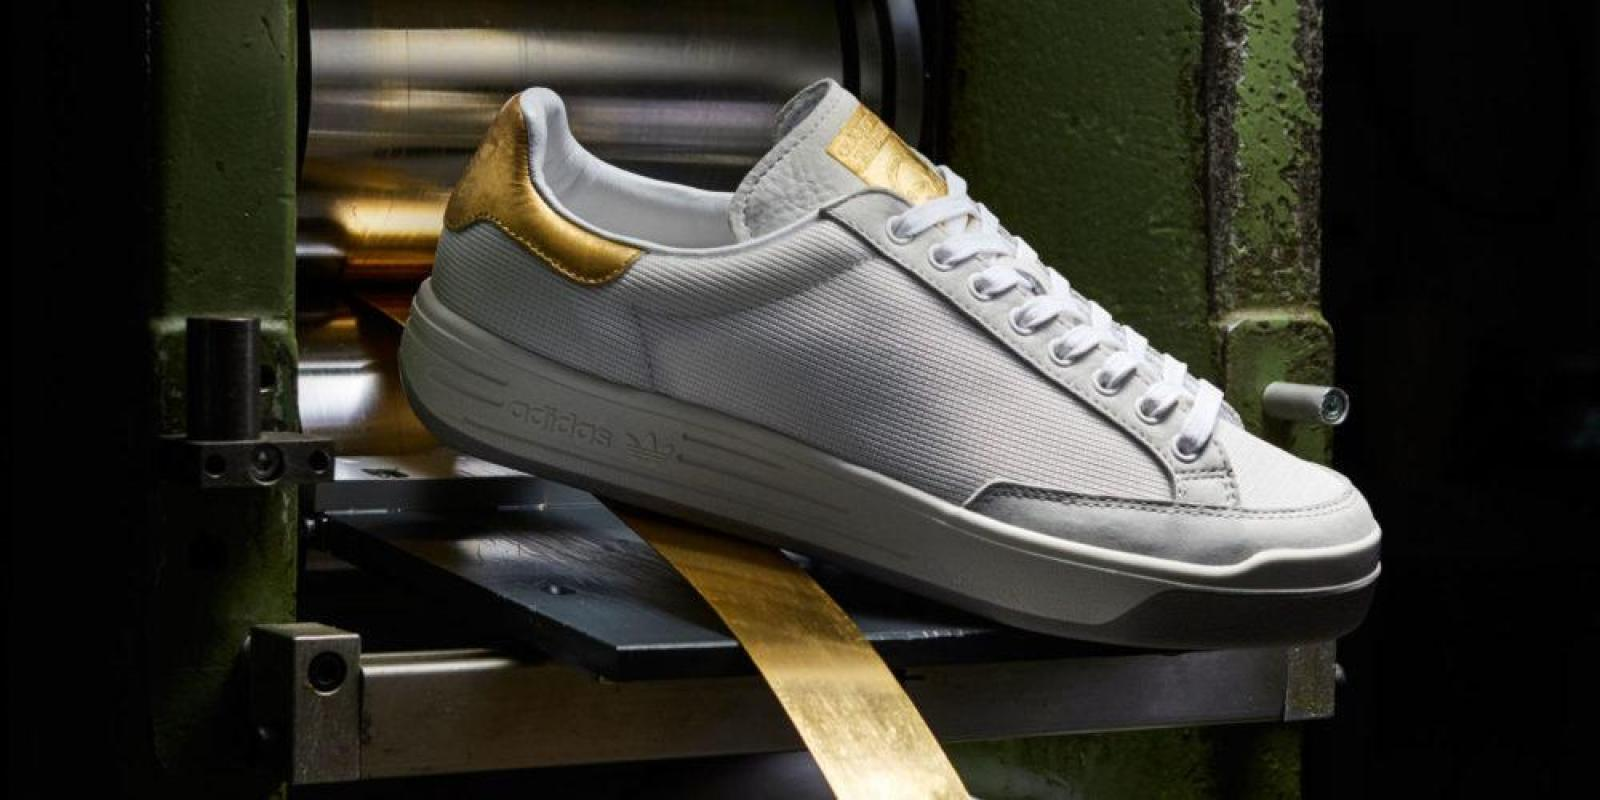 gallery-1468262561-rod-laver-999-gold-2